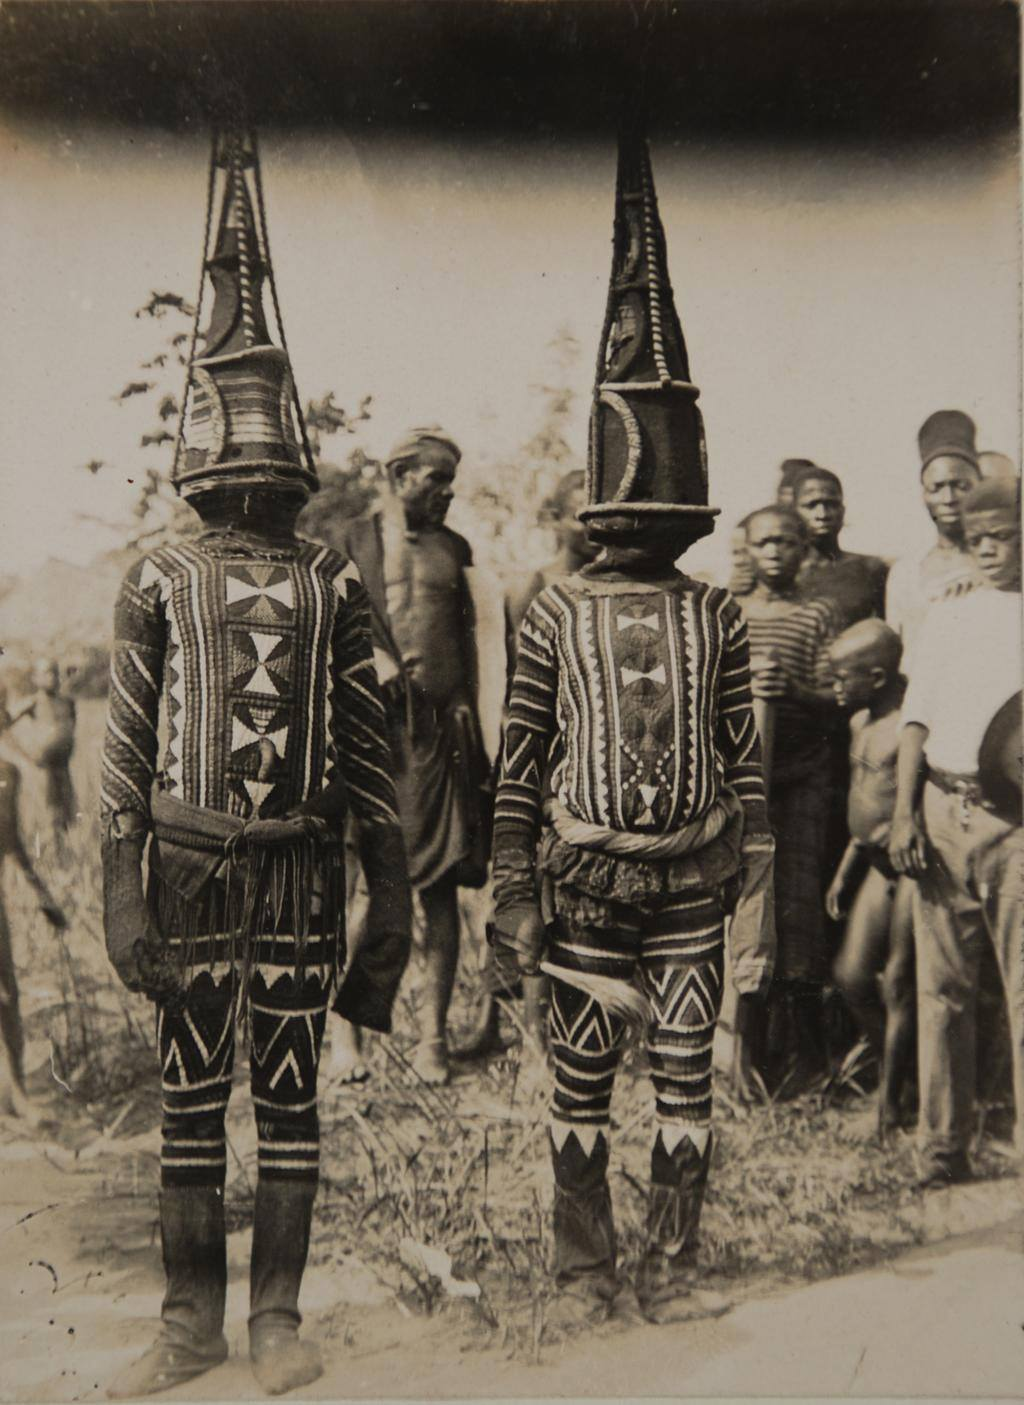 Igbo masquerade dancers. Nri-Awka region, Nigeria. Early 1900s . Photo by Northcote Thomas